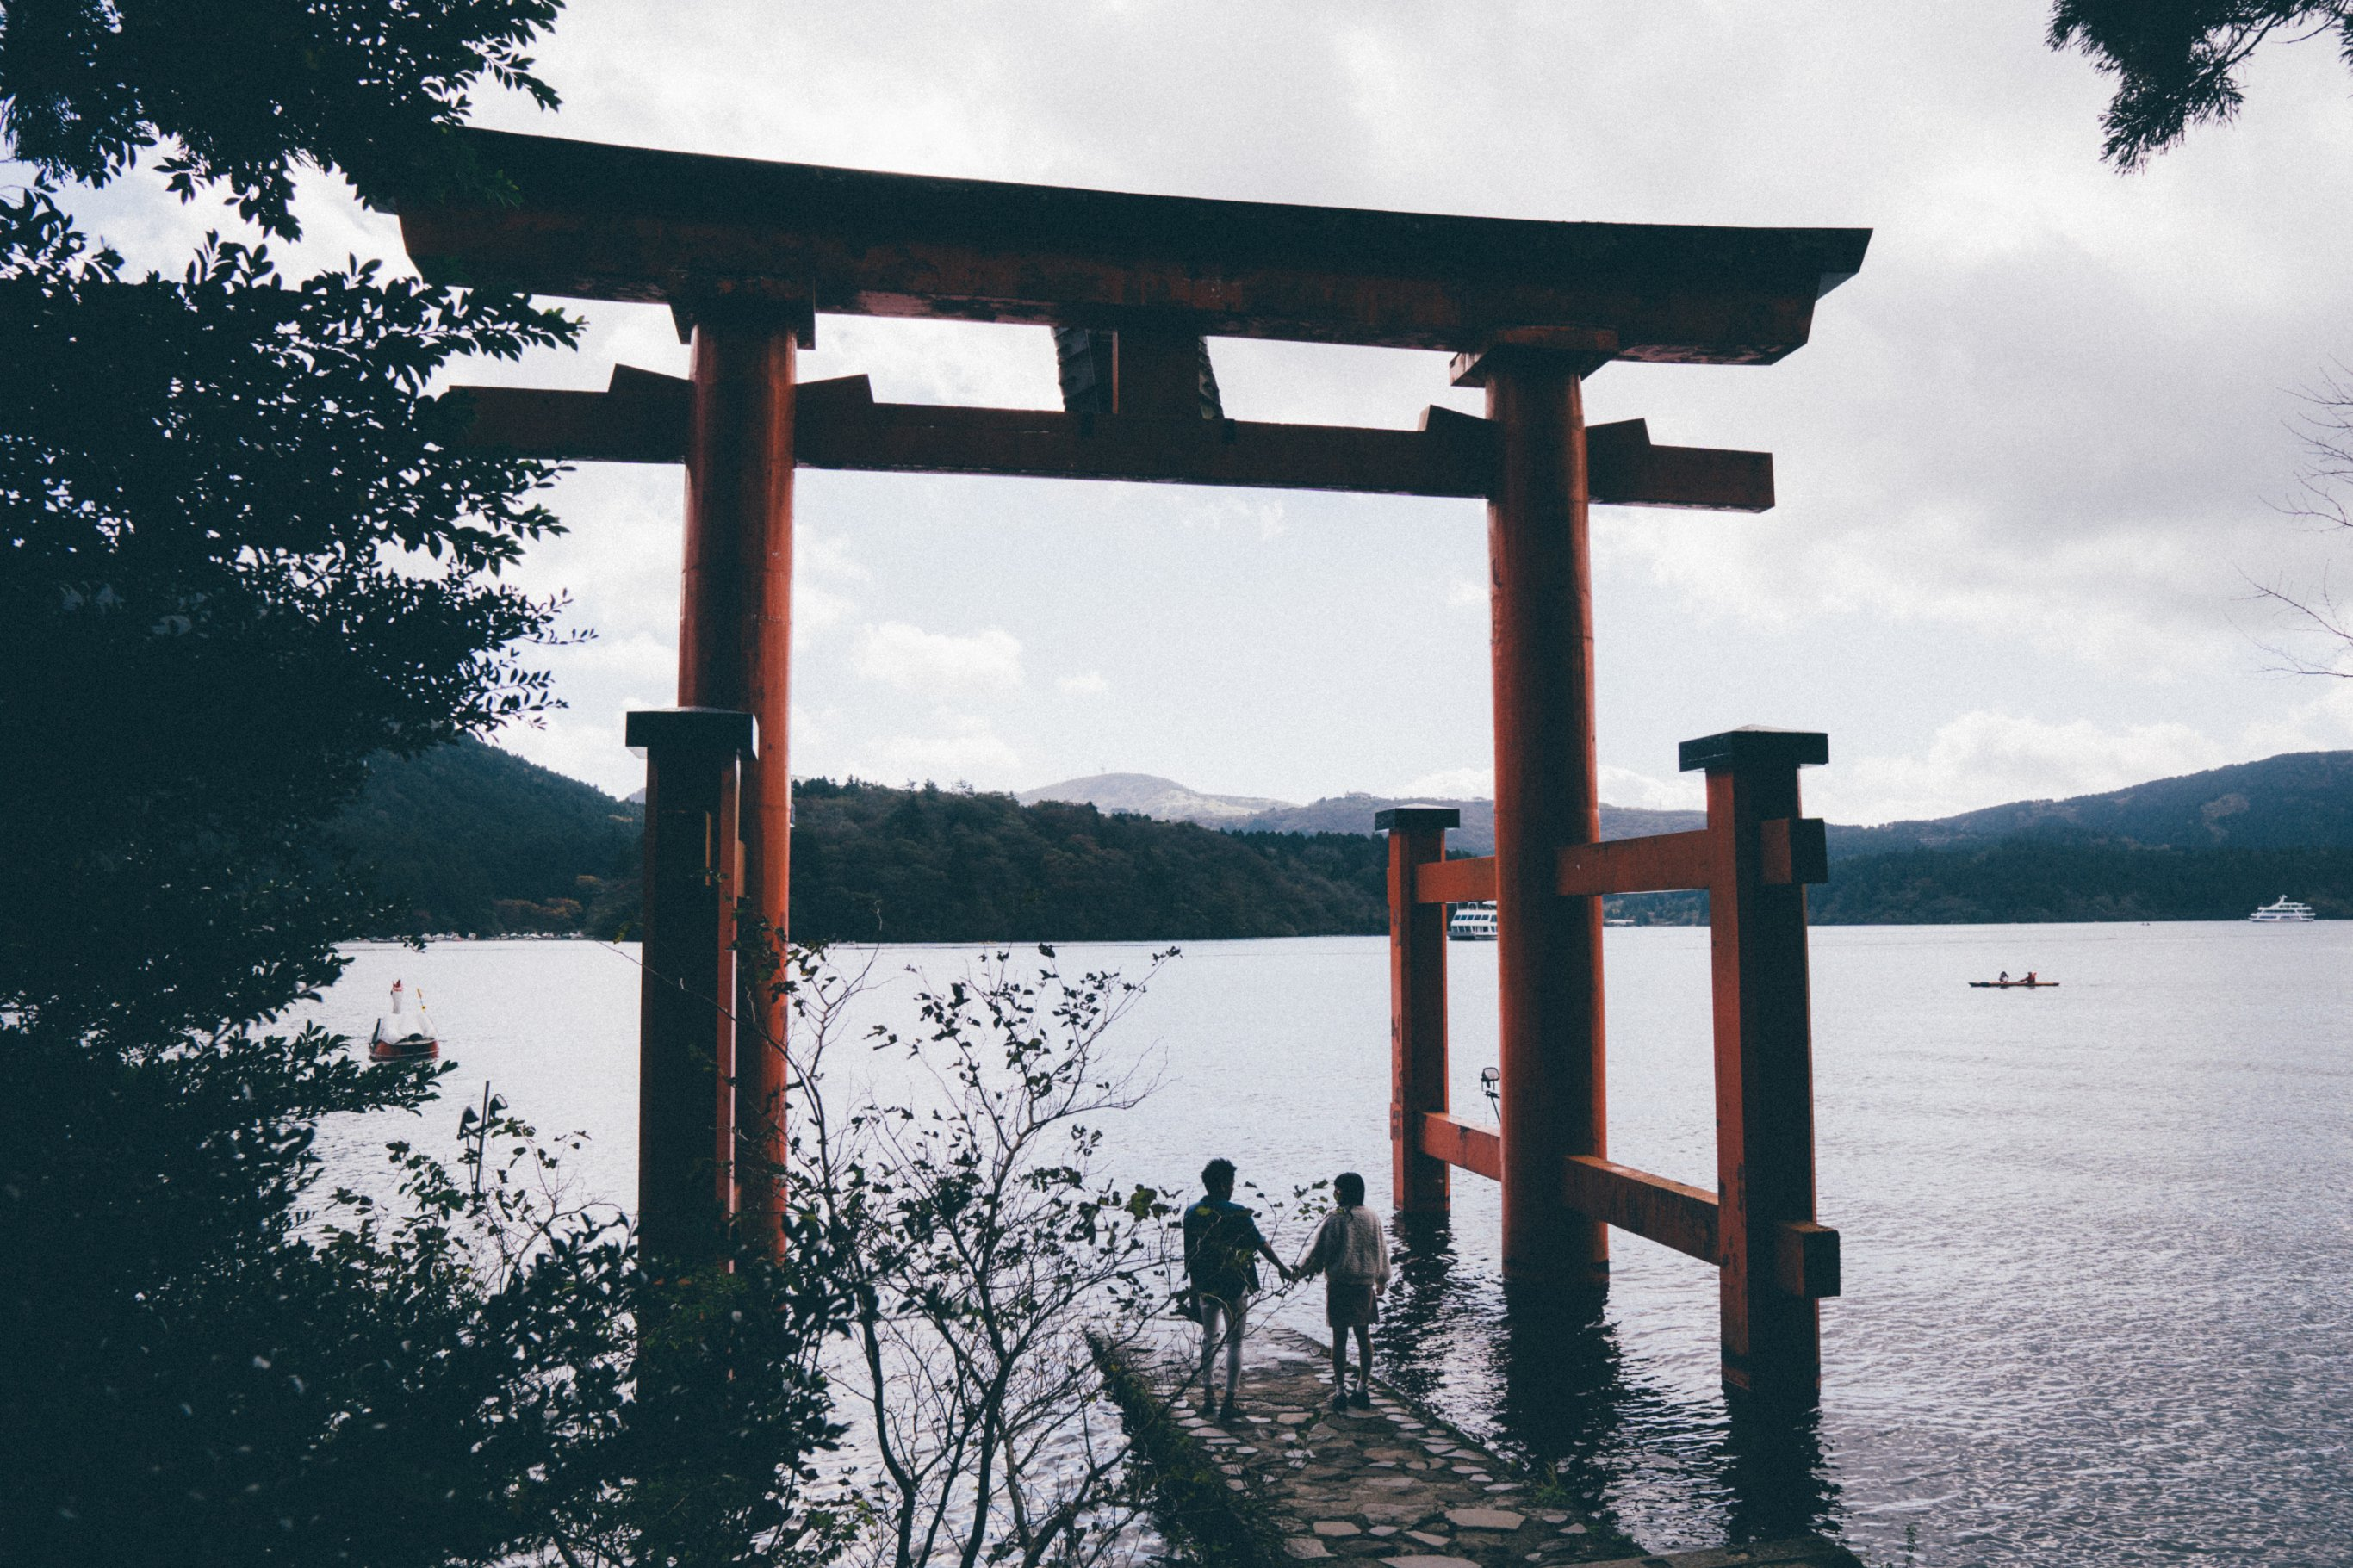 6-Day Essentials of Japan from Tokyo - Japan Itinerary